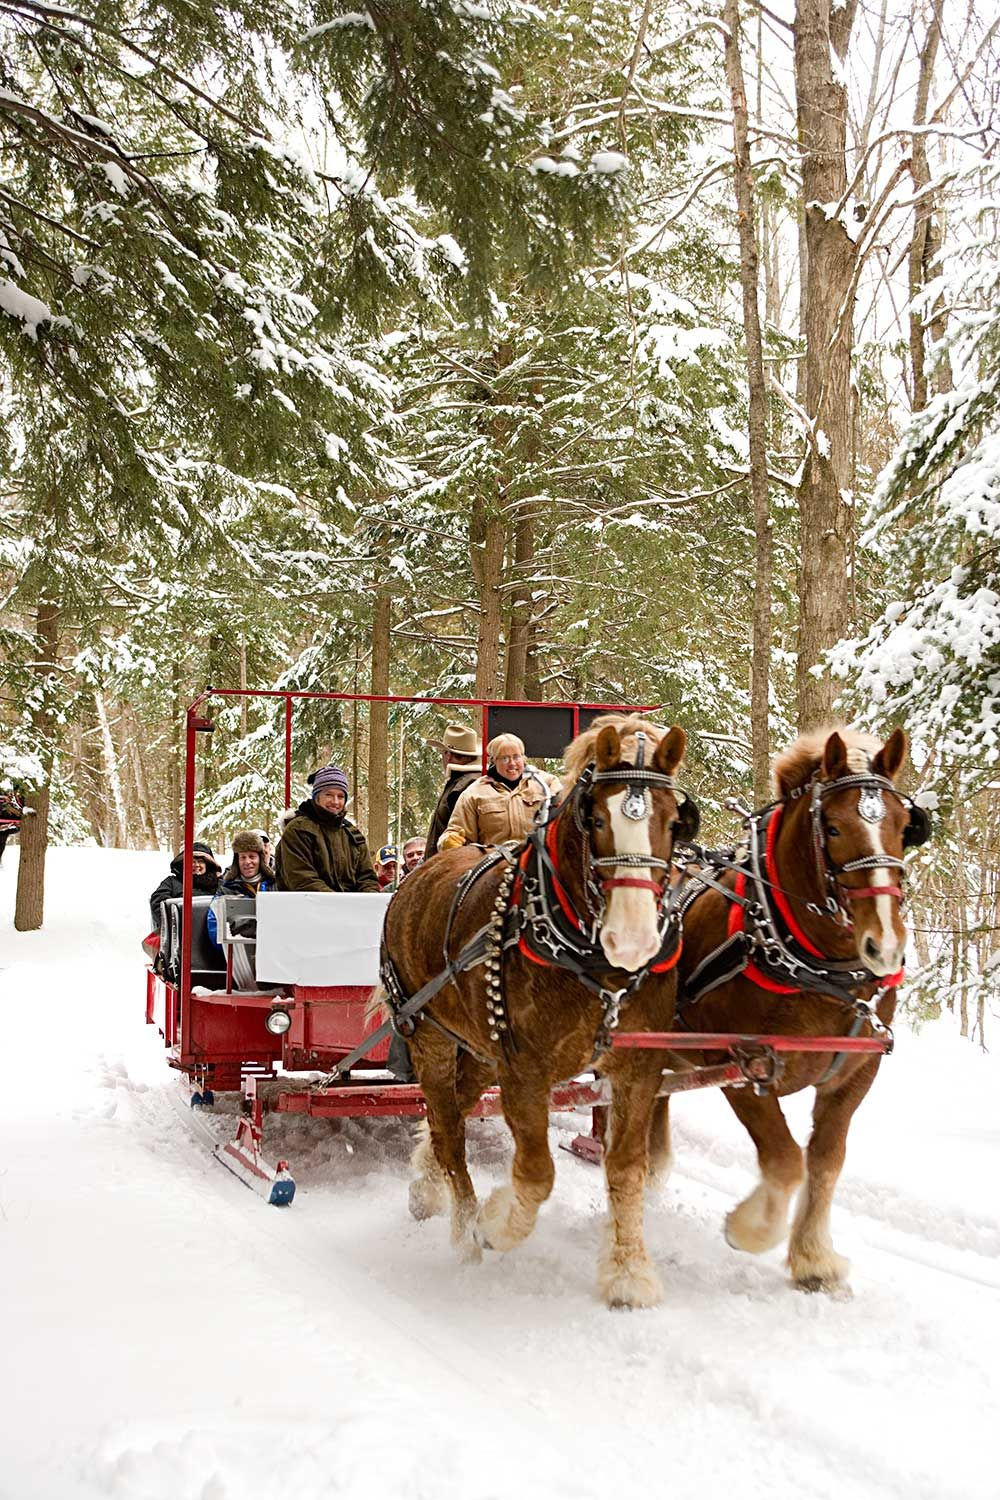 Sleigh Ride In The Snow.... I REALLY Hope We Will Be Able